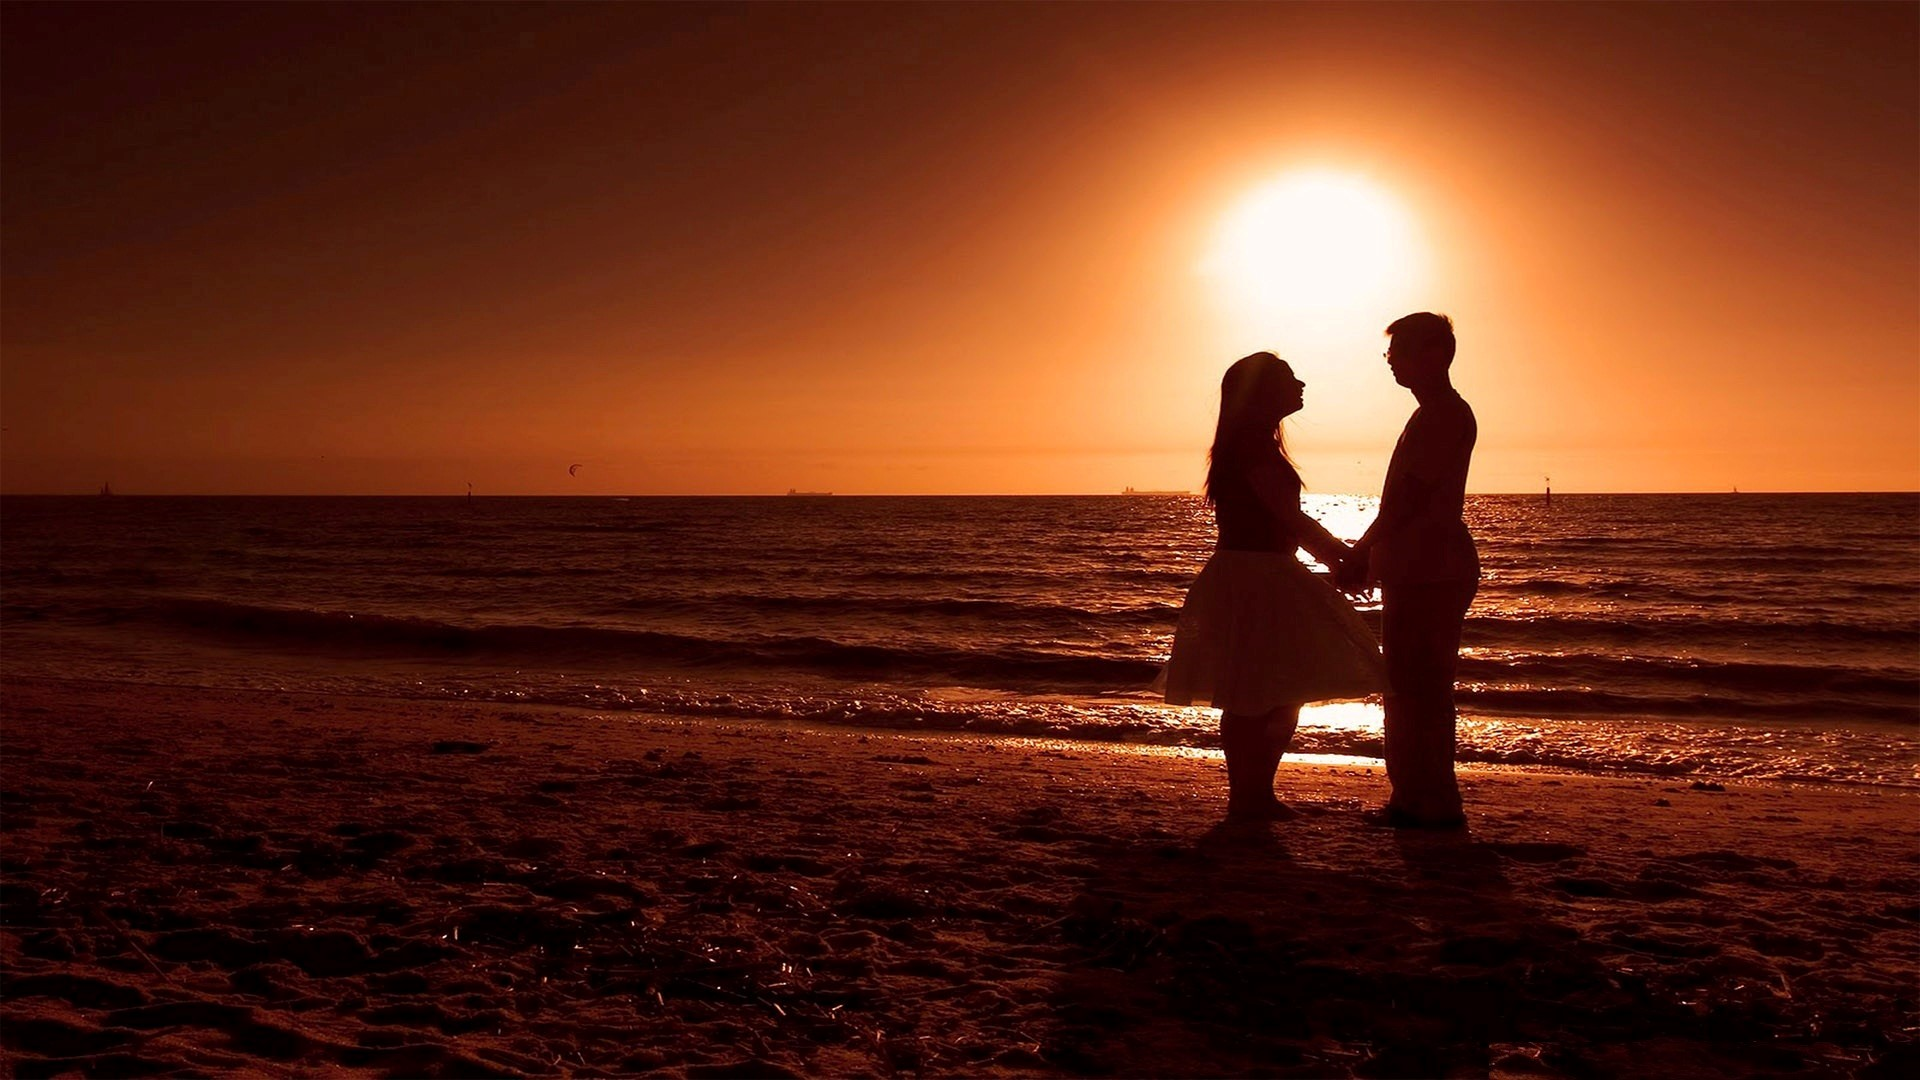 HD Wallpaper Love couple 1920x1080 - WallpaperSafari